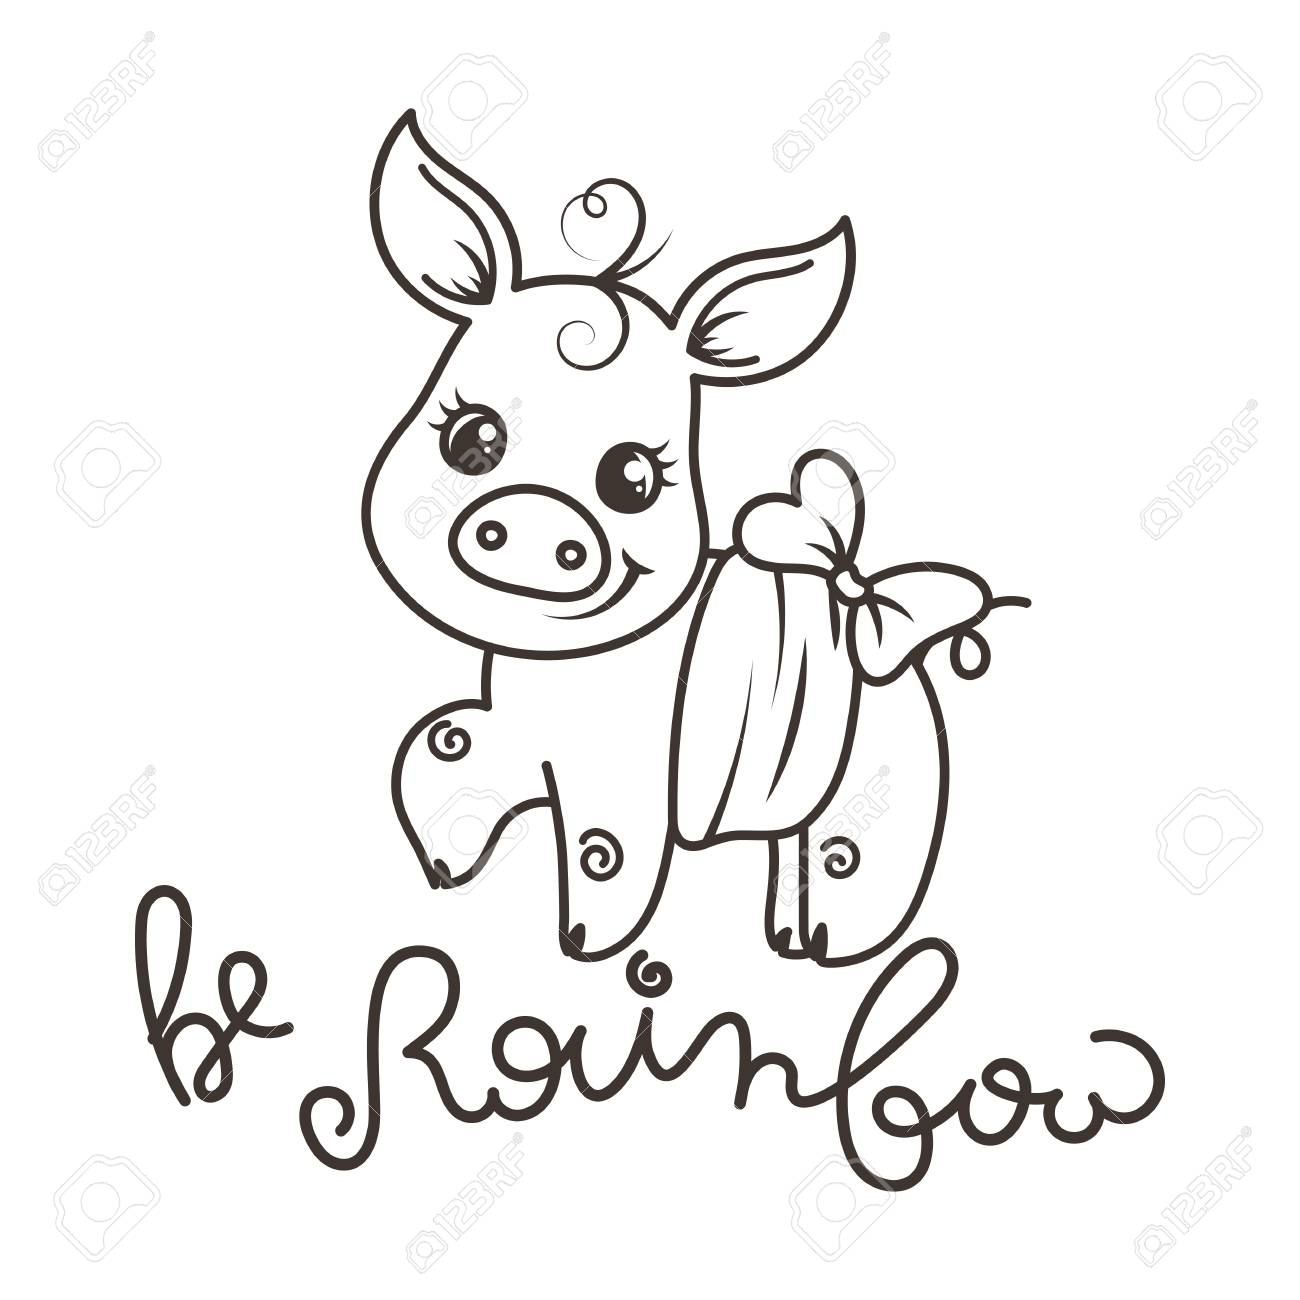 Be rainbow. Greeting card with cute cartoon pig, coloring page